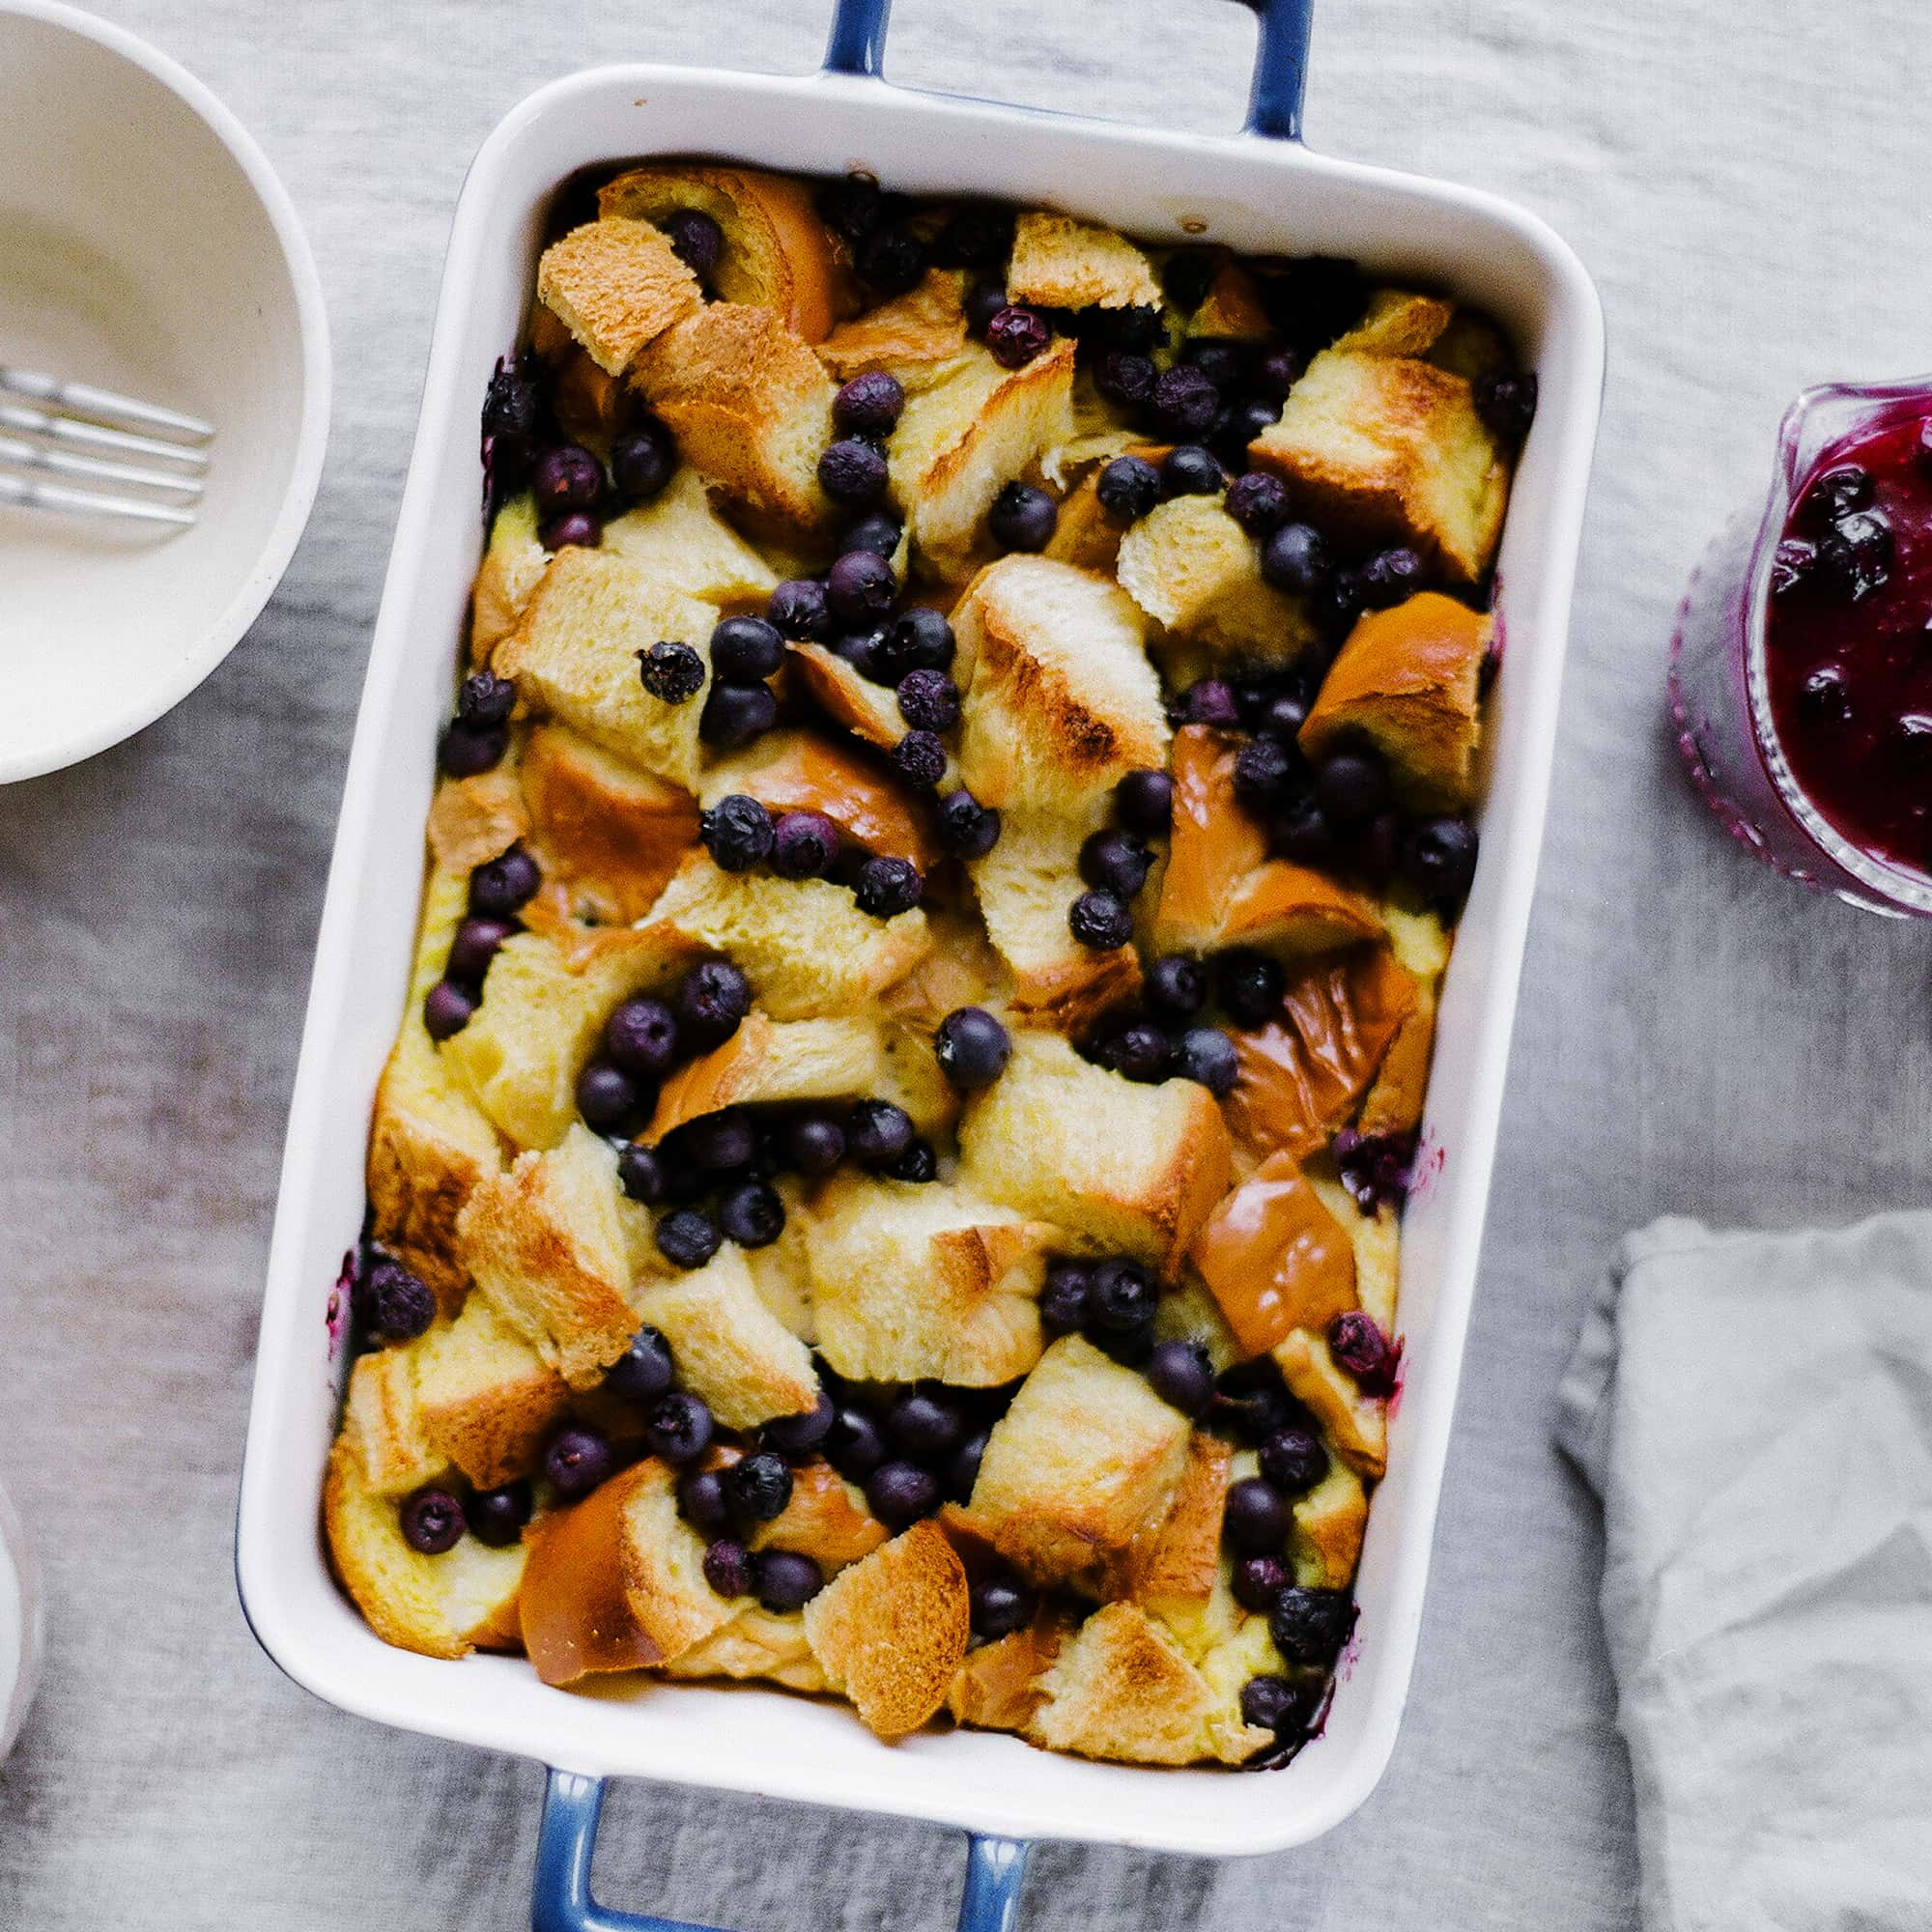 Lemon Blueberry French Toast Casserole can be made overnight and tastes like a combination of bread pudding and gourmet French toast. It's perfect for Mother's Day!